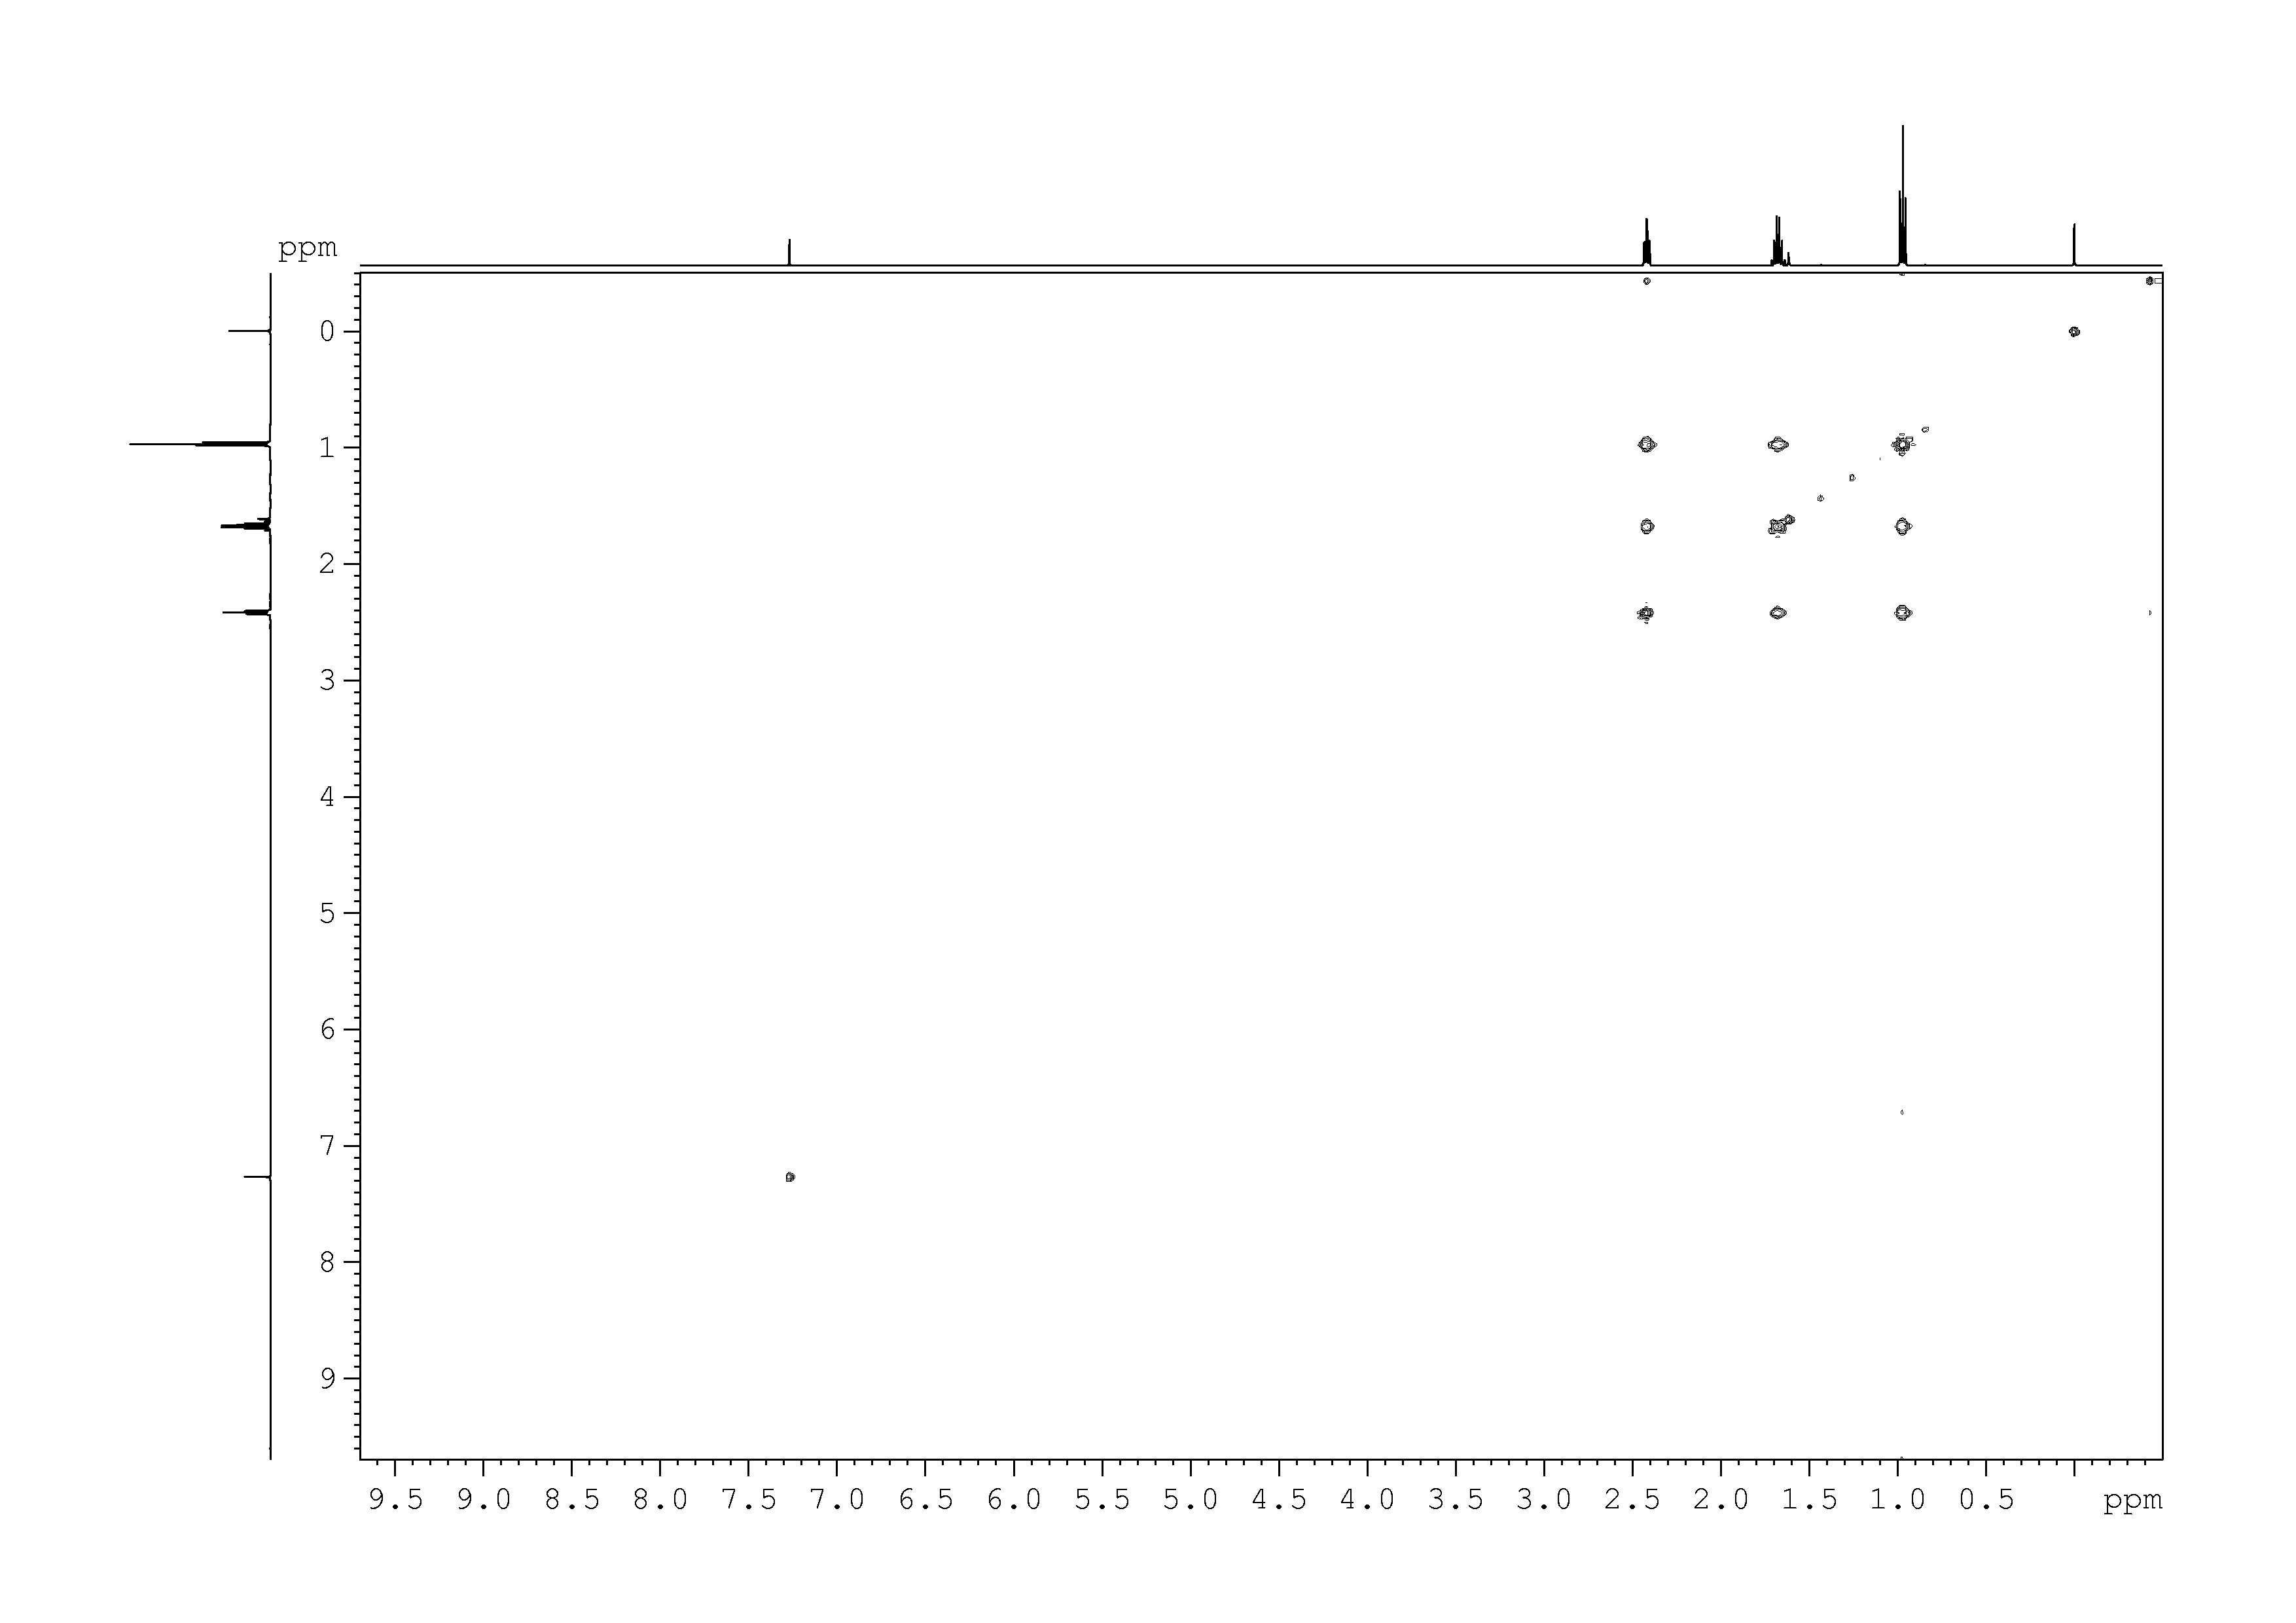 2D [1H,1H]-TOCSY, n/a spectrum for Butyraldehyde